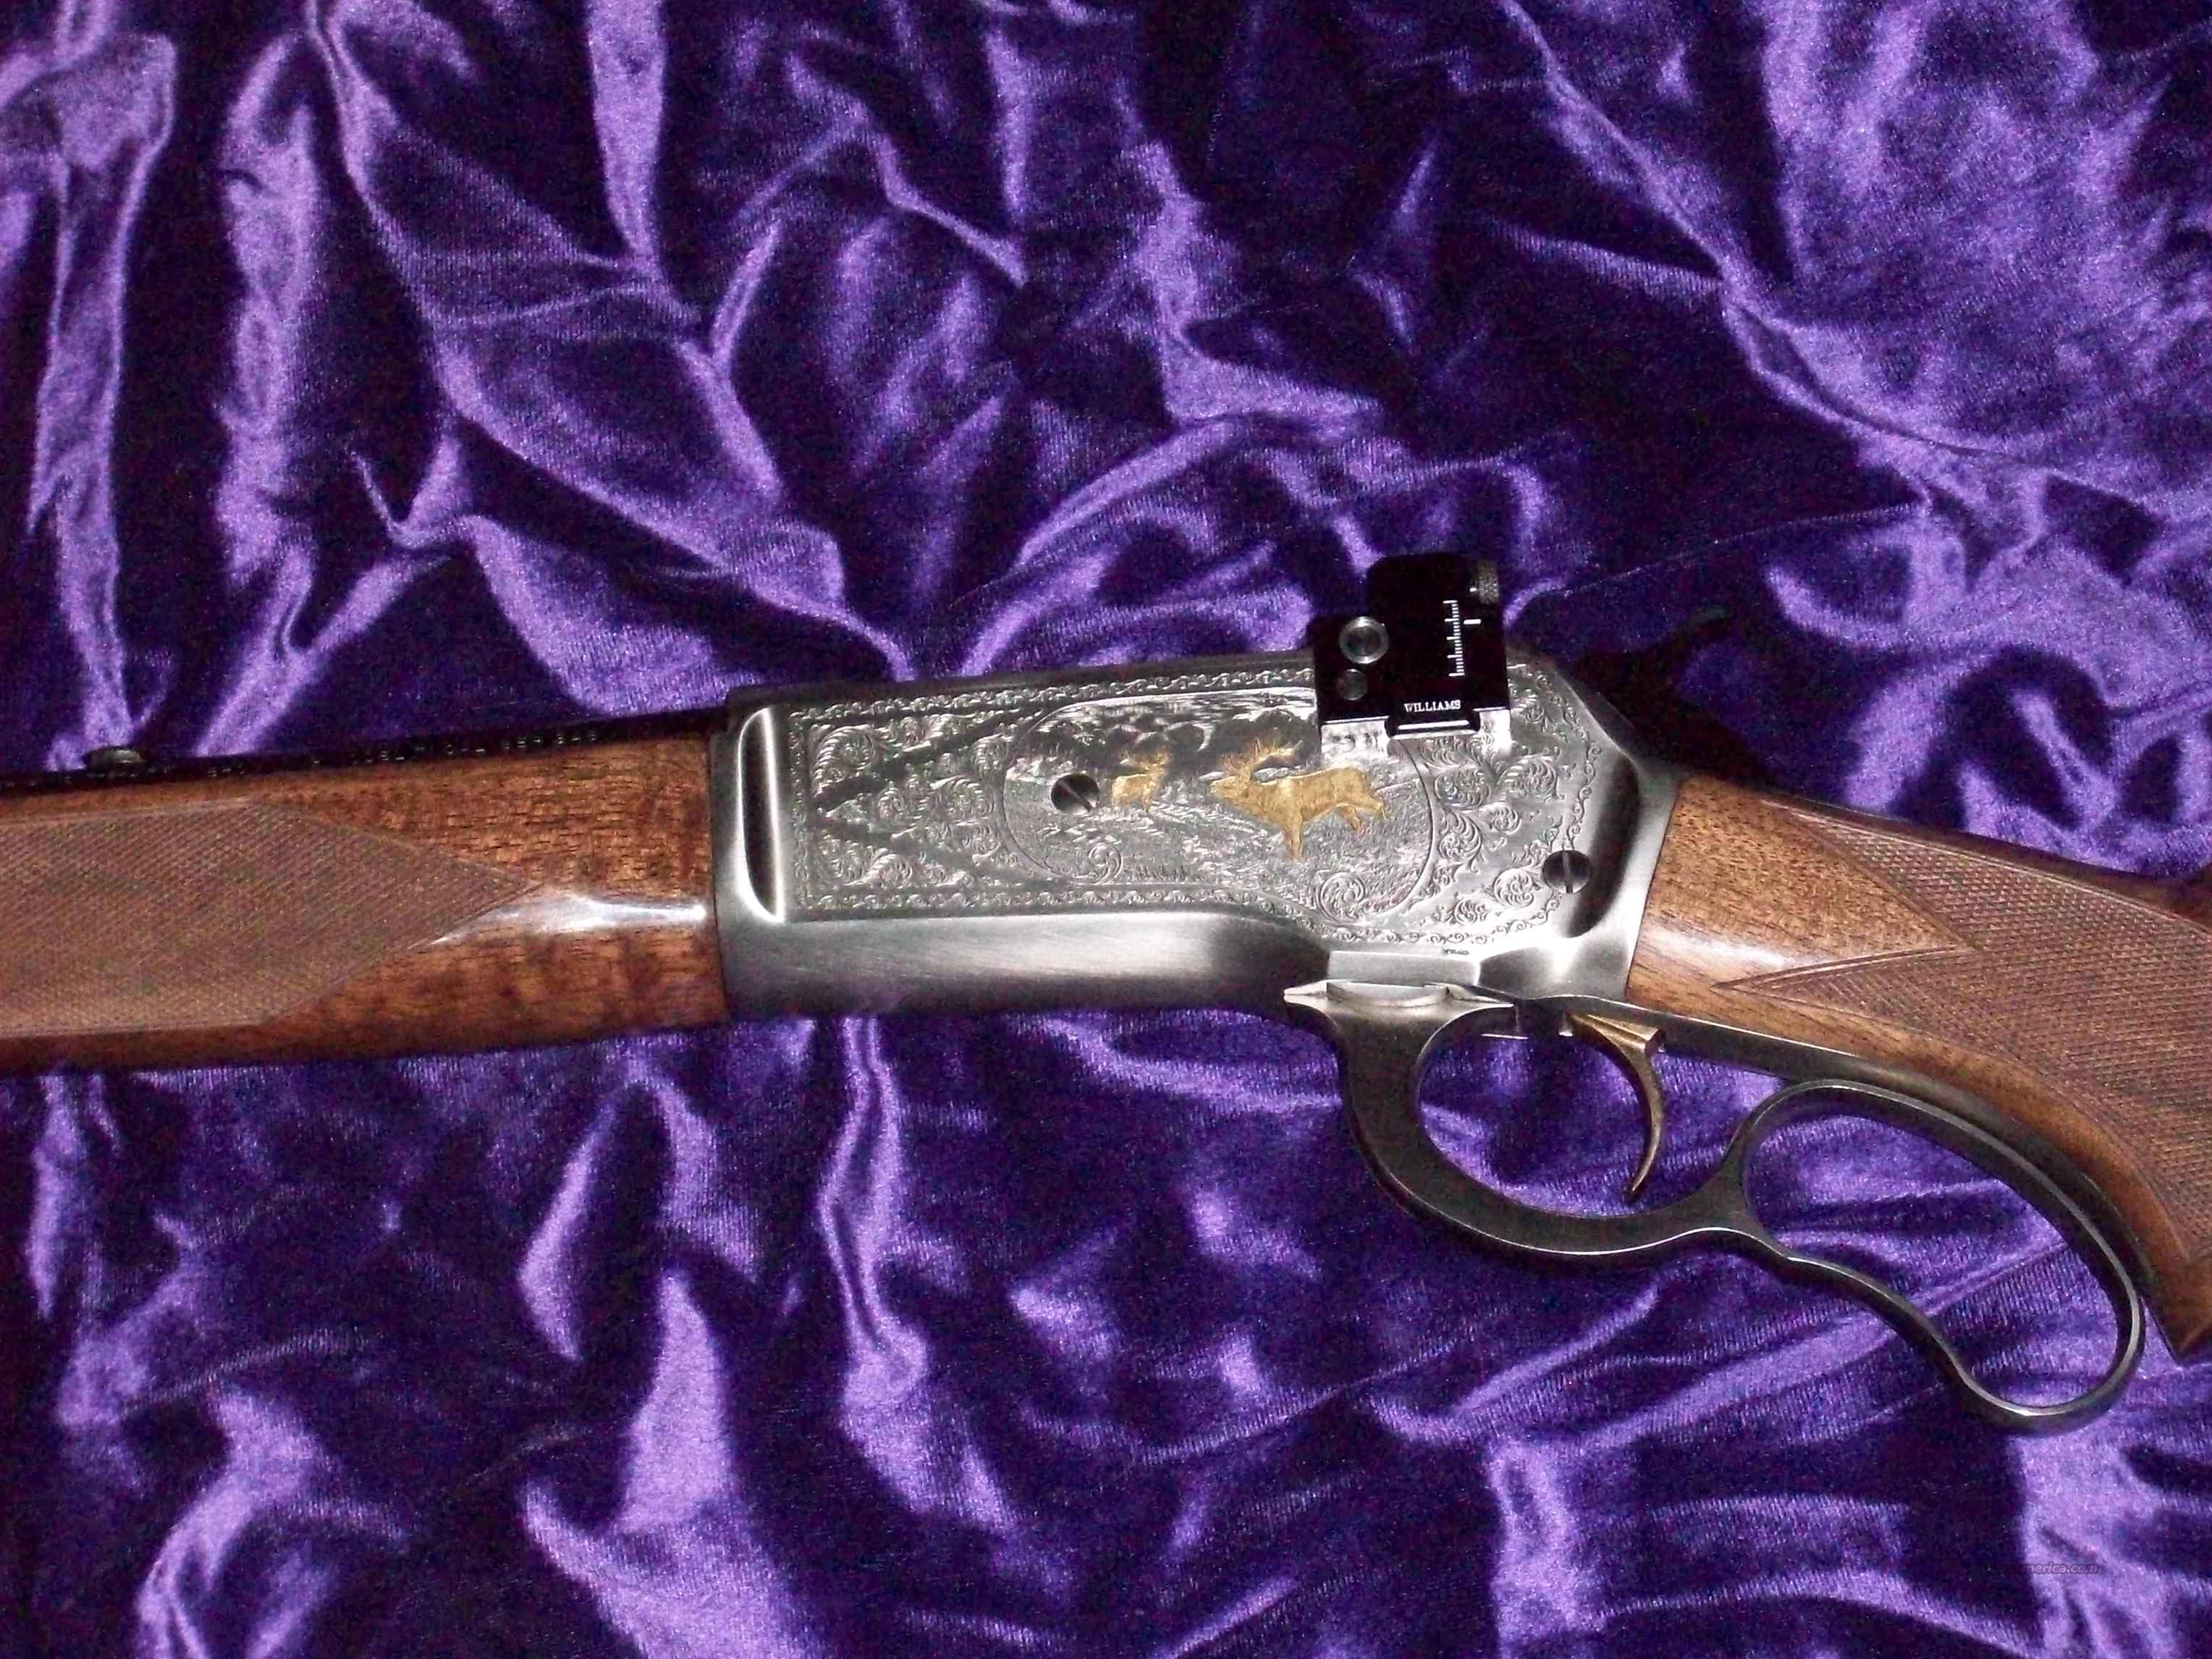 Browning M71 Deluxe  Guns > Rifles > Browning Rifles > Lever Action